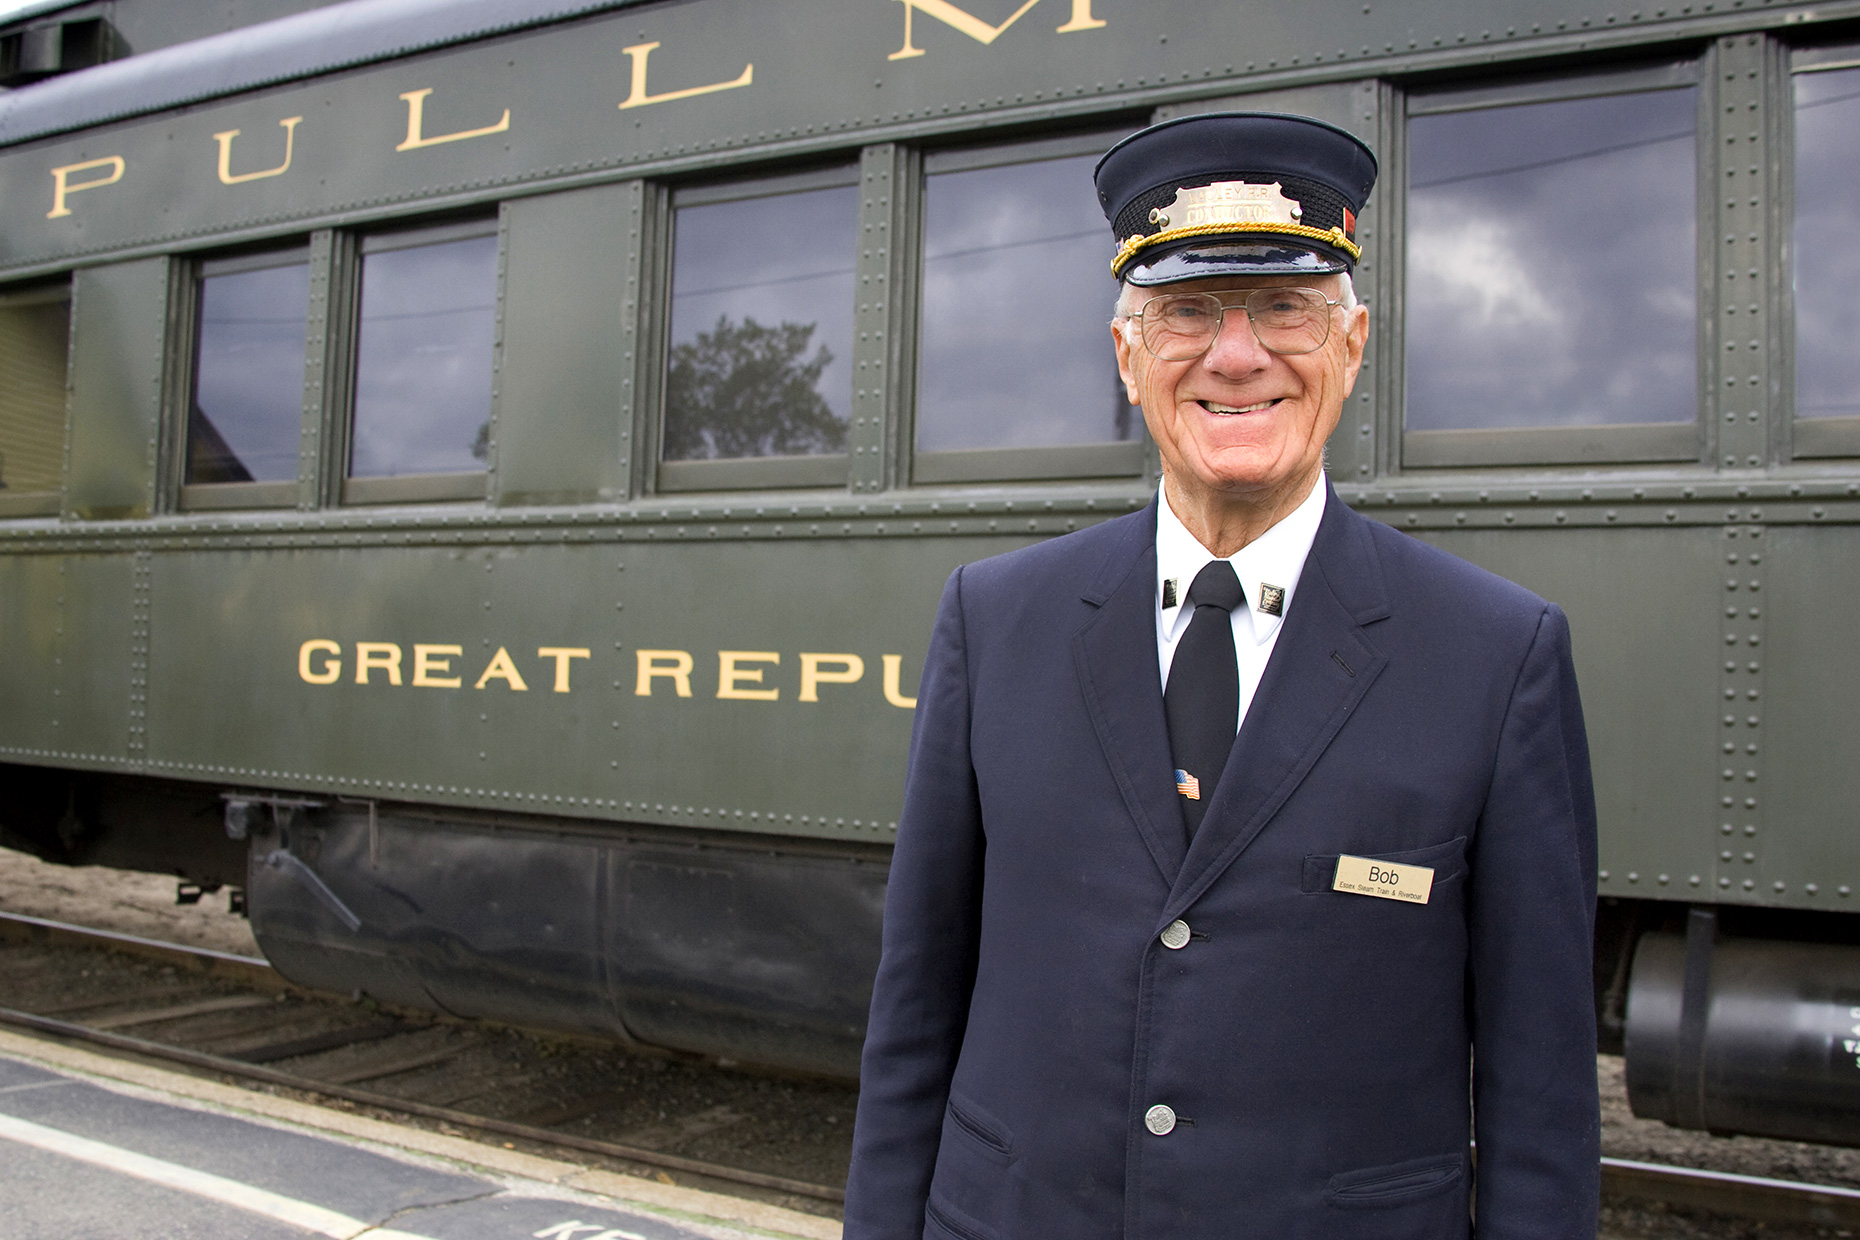 Conductor-Valley-Railroad-Essex-Steam-Train-Essex-Connecticut-Portrait-Photographer-Caryn-B-Davis